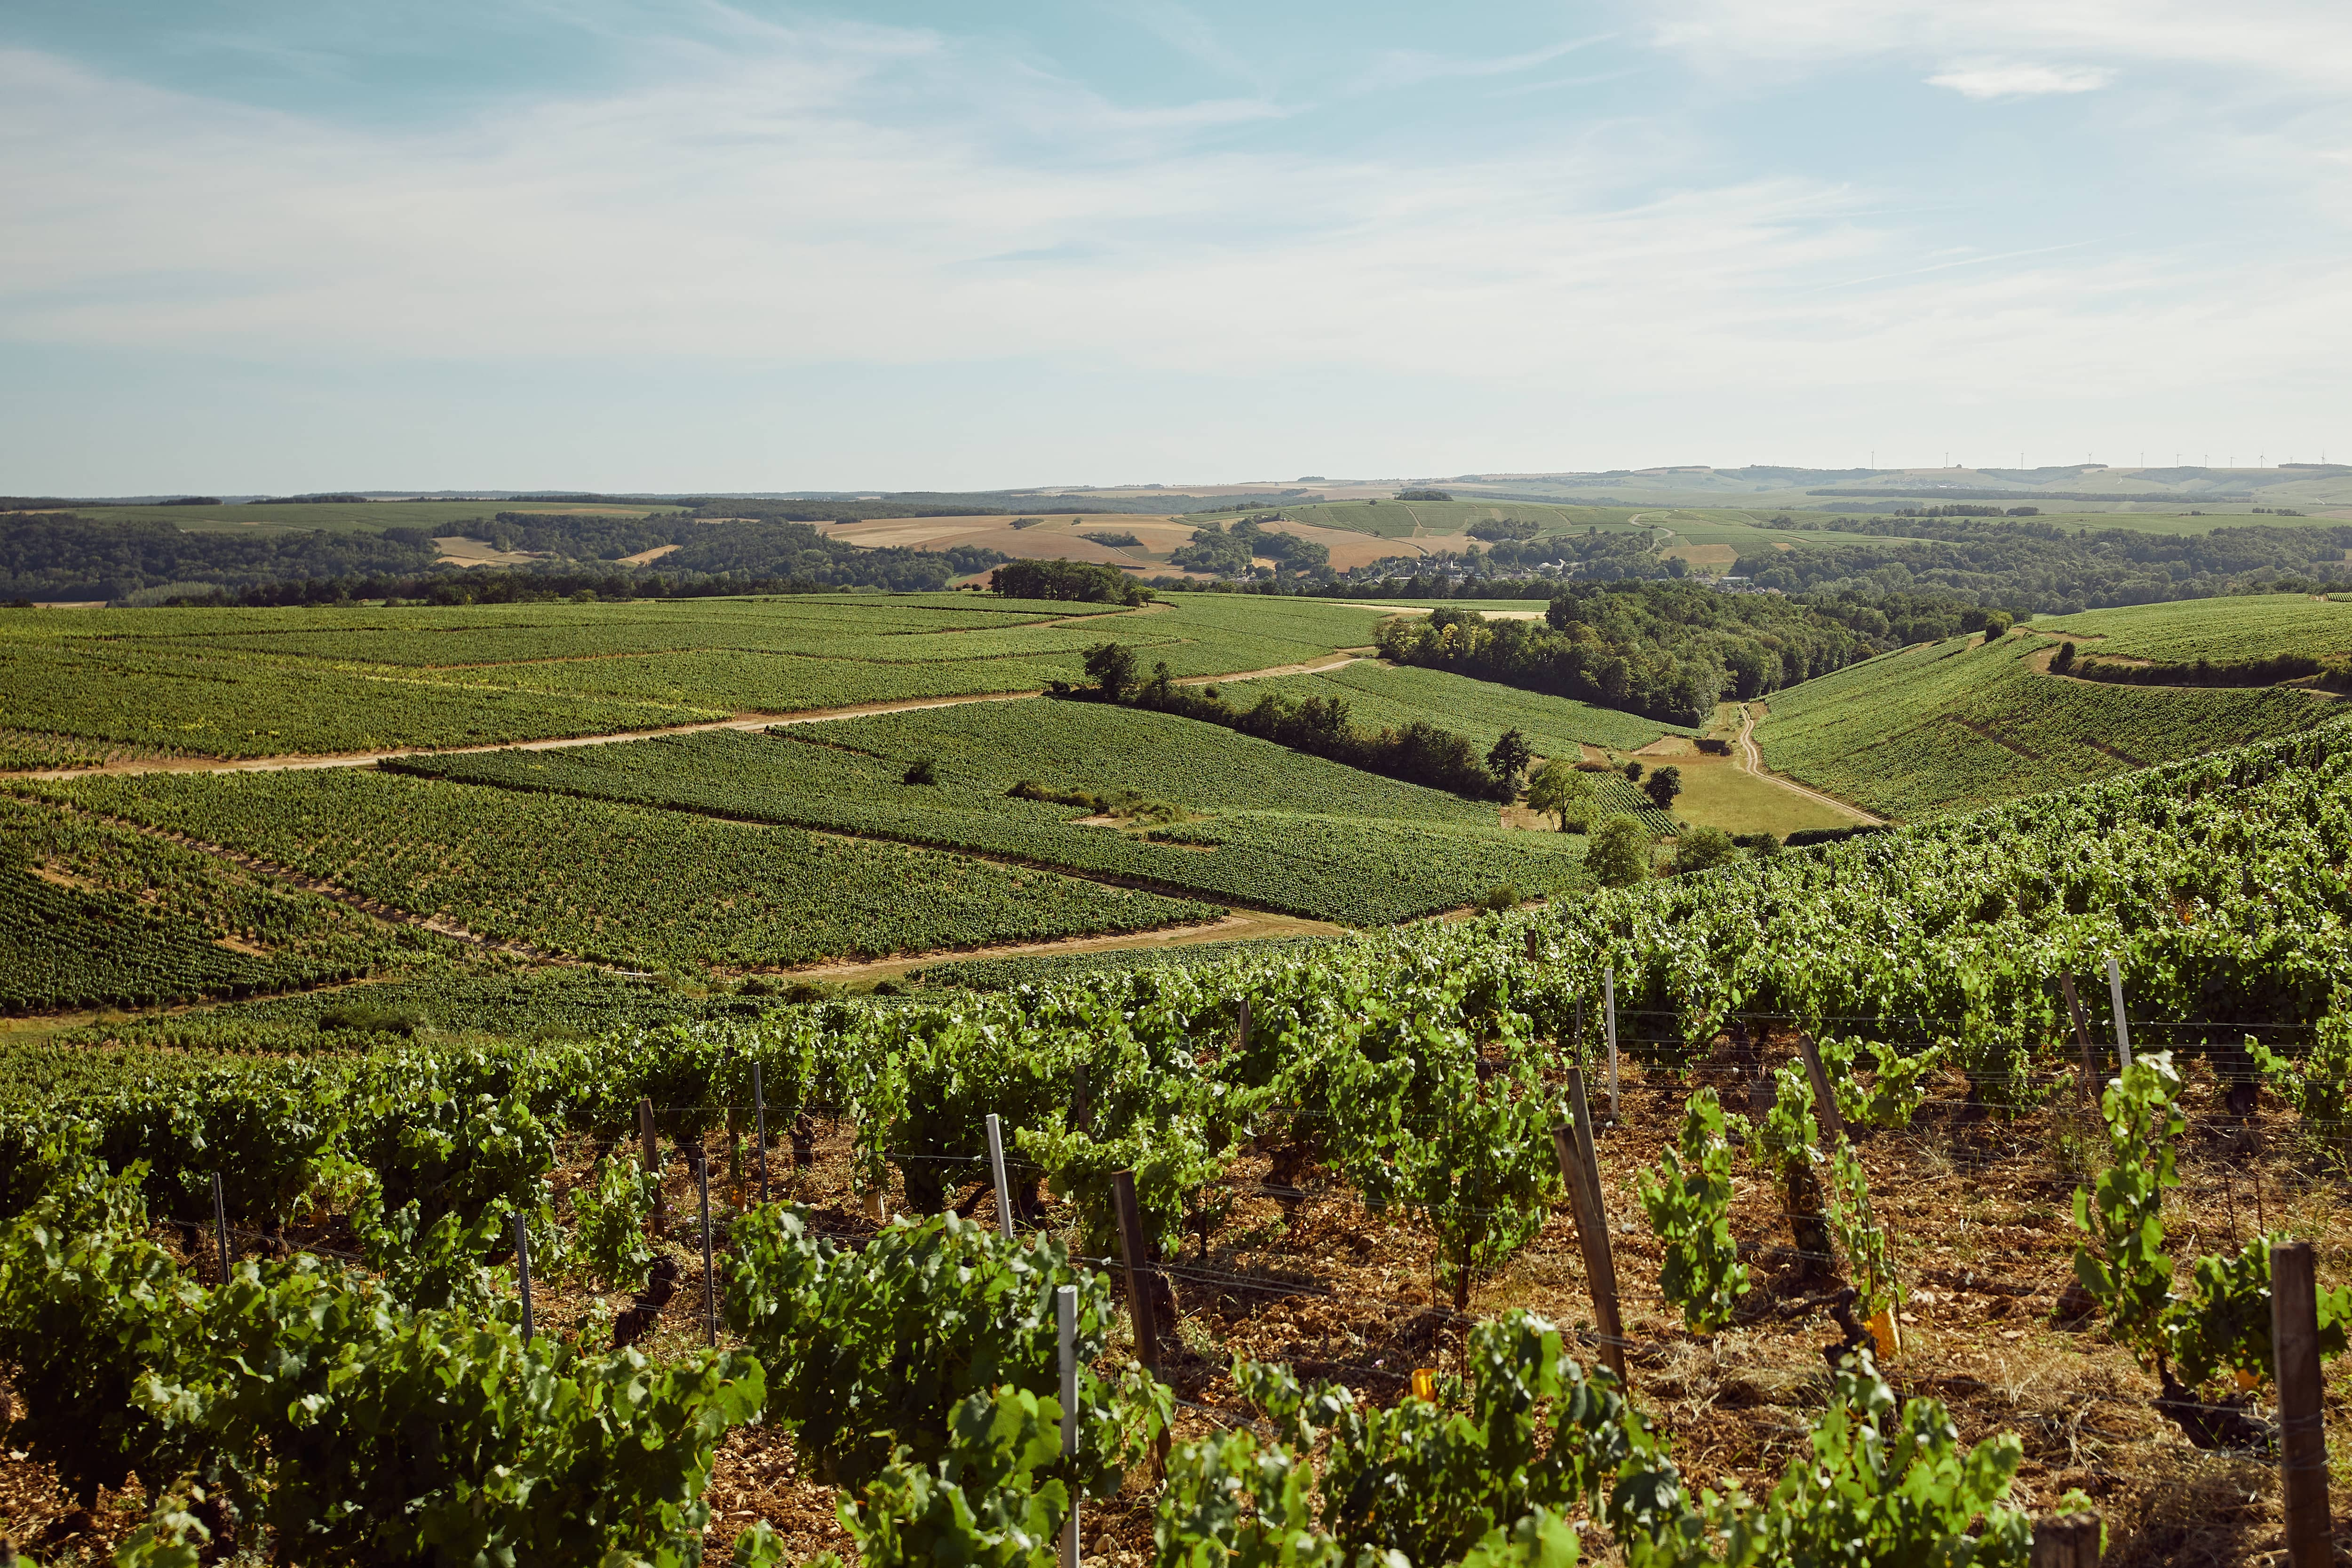 Organic wine production at a vineyard in France